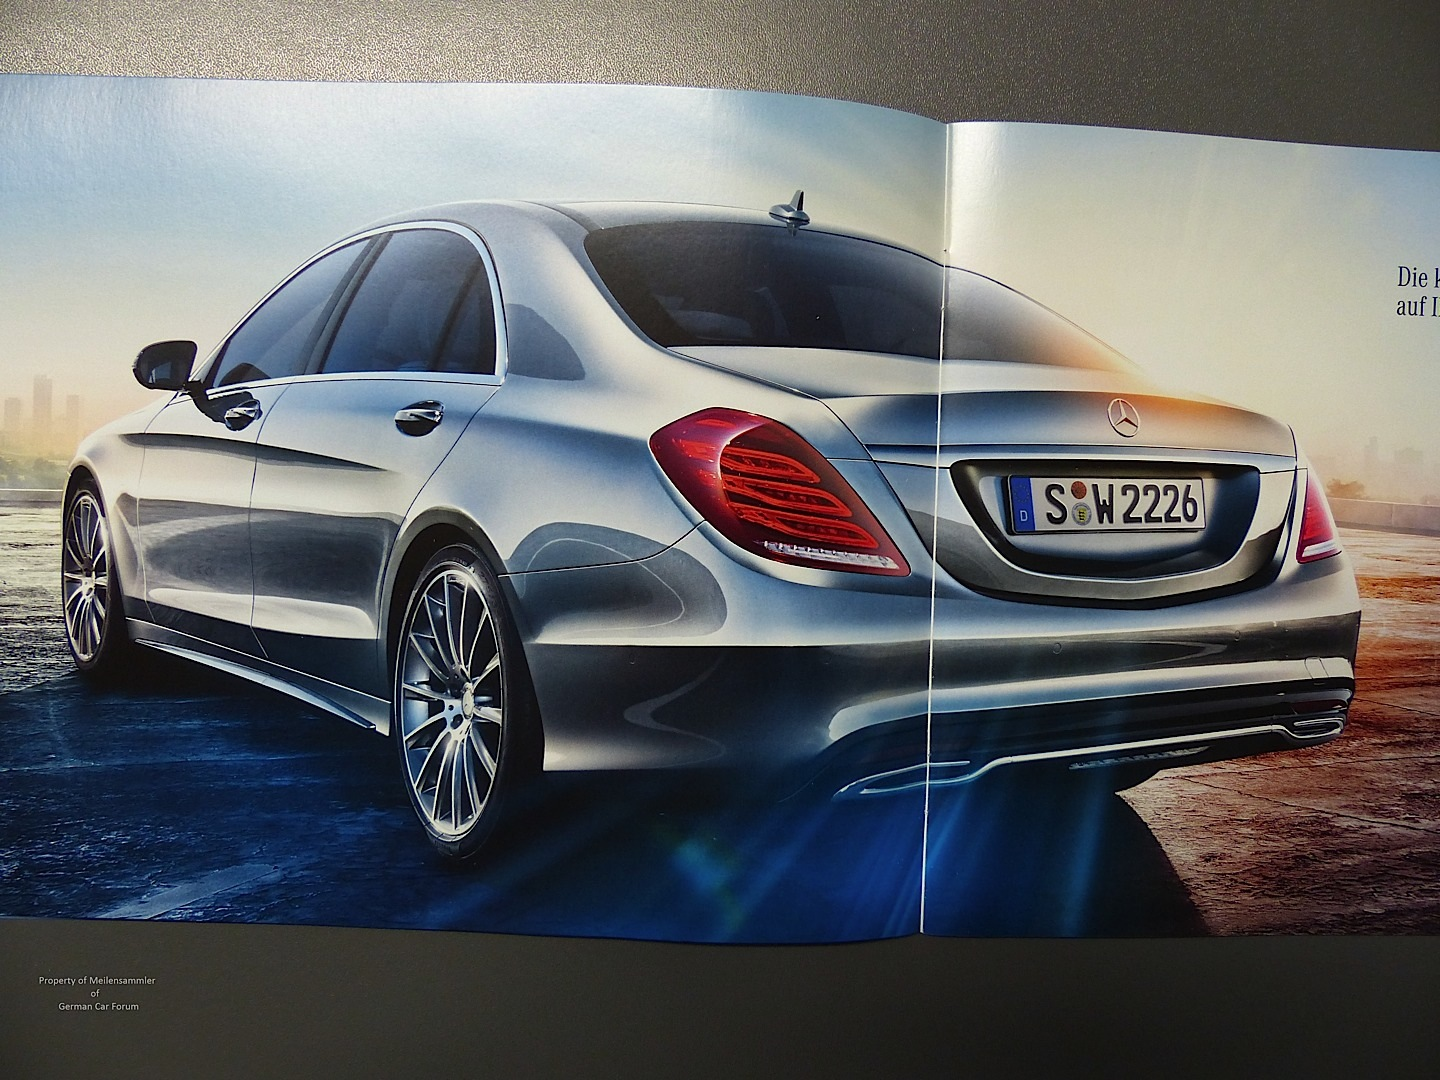 2014 mercedes benz s class new details shown in leaked for New mercedes benz s class 2014